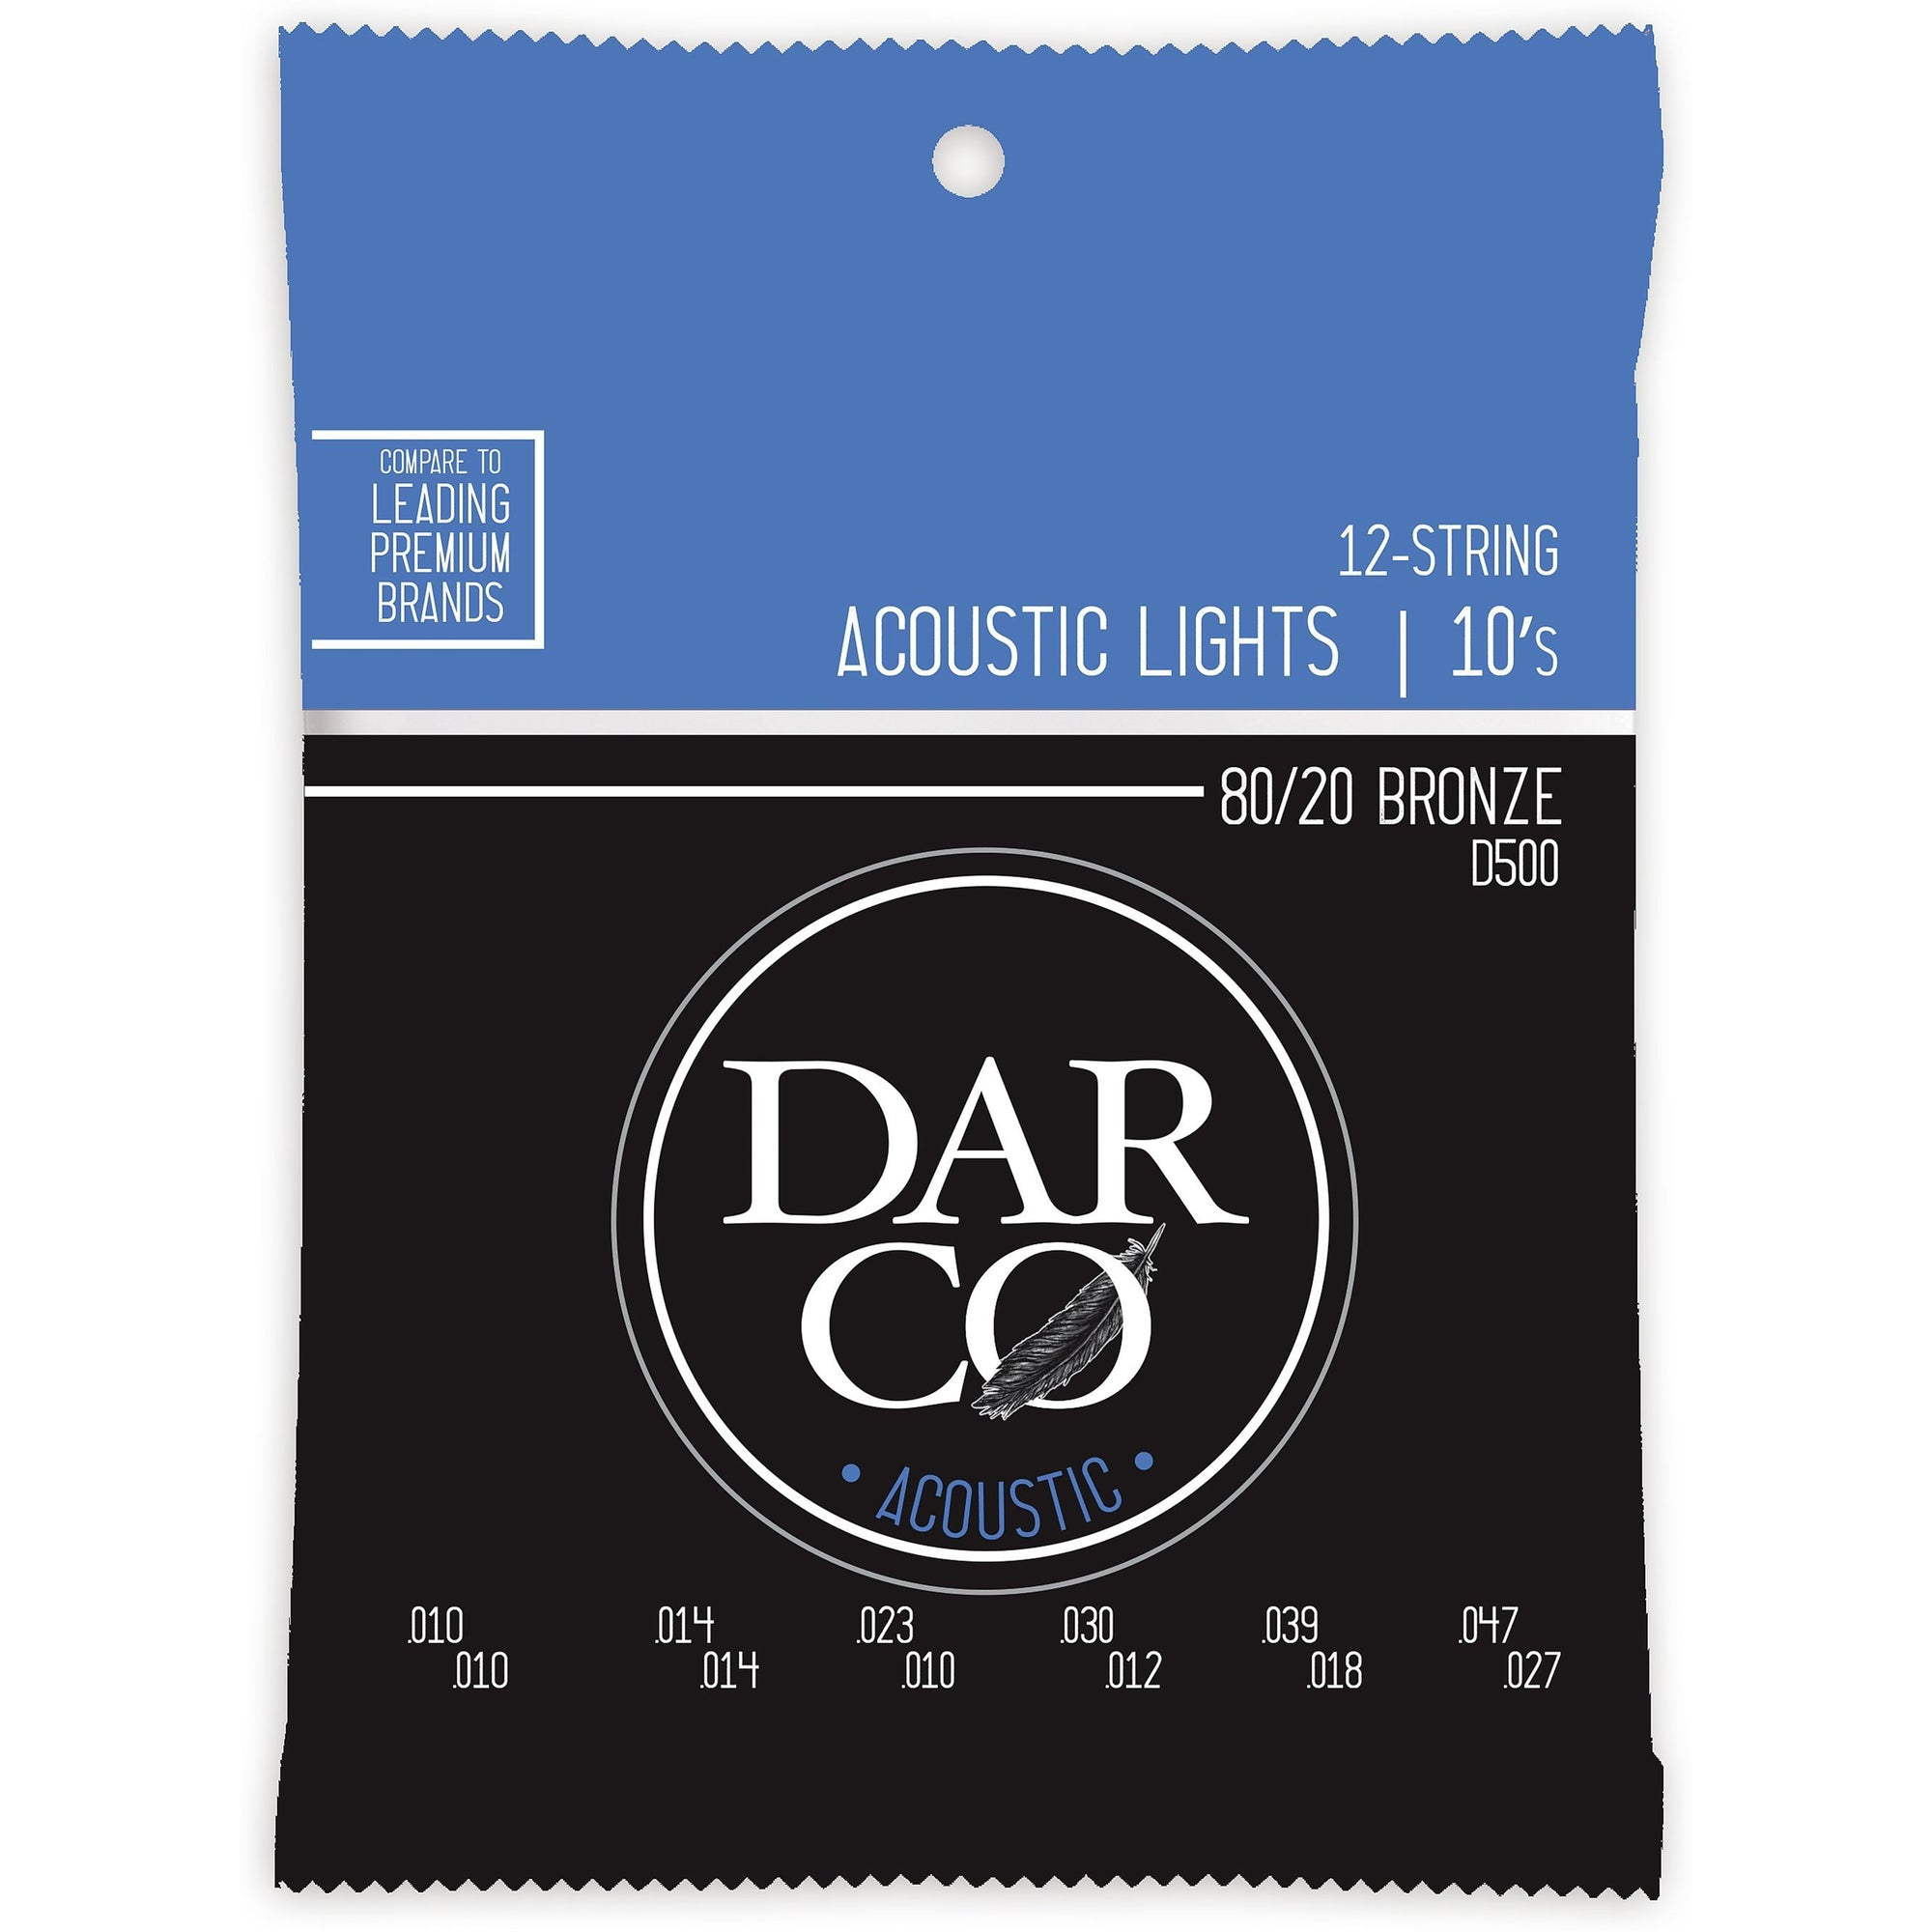 Darco 80/20 Bronze 12-String Acoustic Guitar Strings, D500, Extra Light